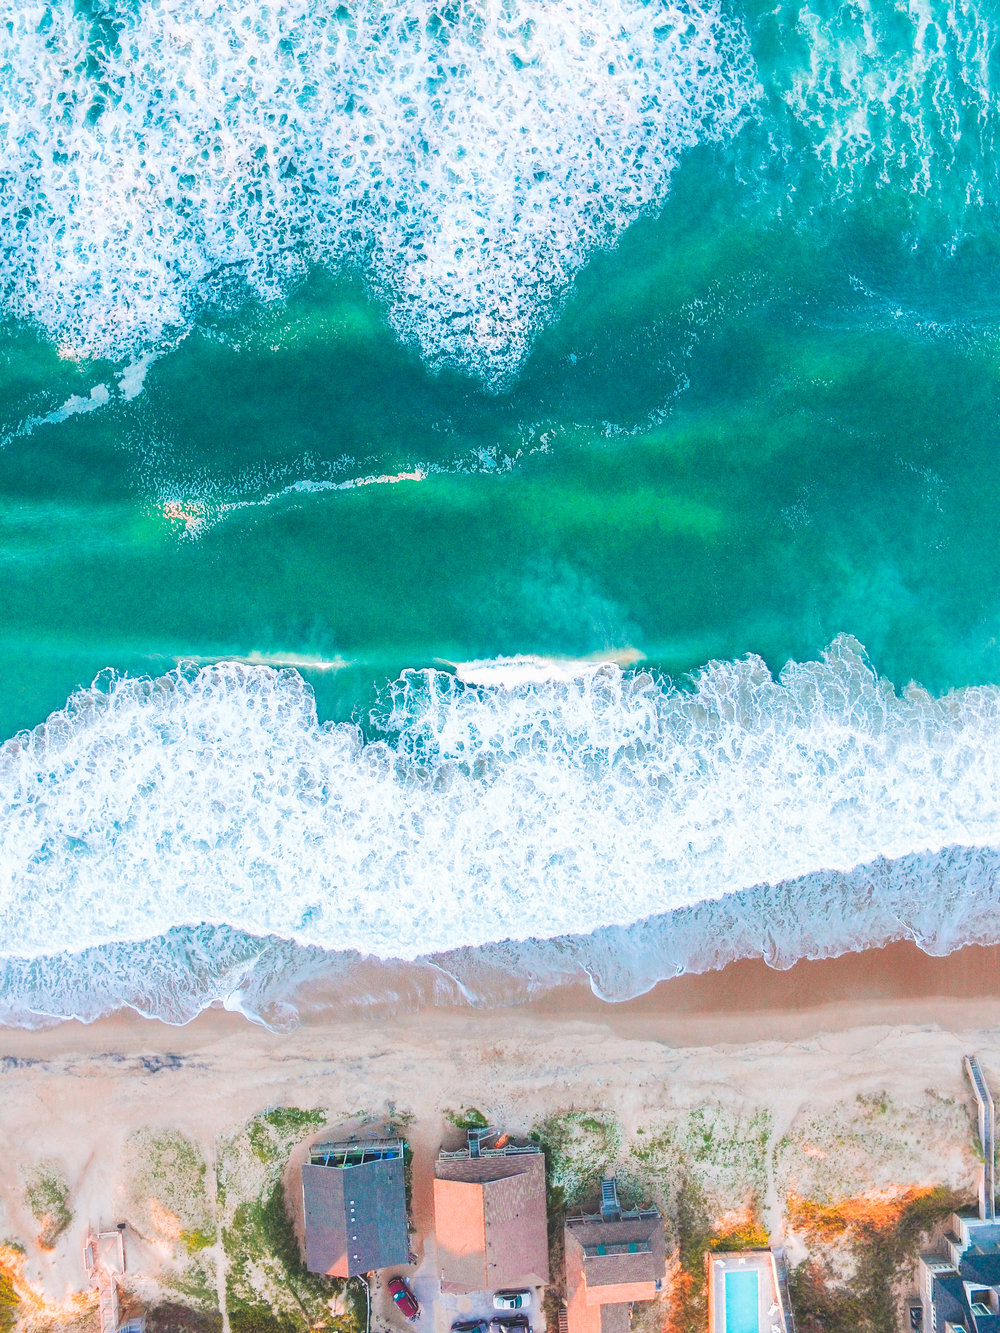 4/29/2017 I captured this drone shot last week in Outer Banks, North Carolina. The OBX is a popular vacation destination with numerous beaches and state parks. This particular flight took place over the waves of Nags Head. -Micah Marshall